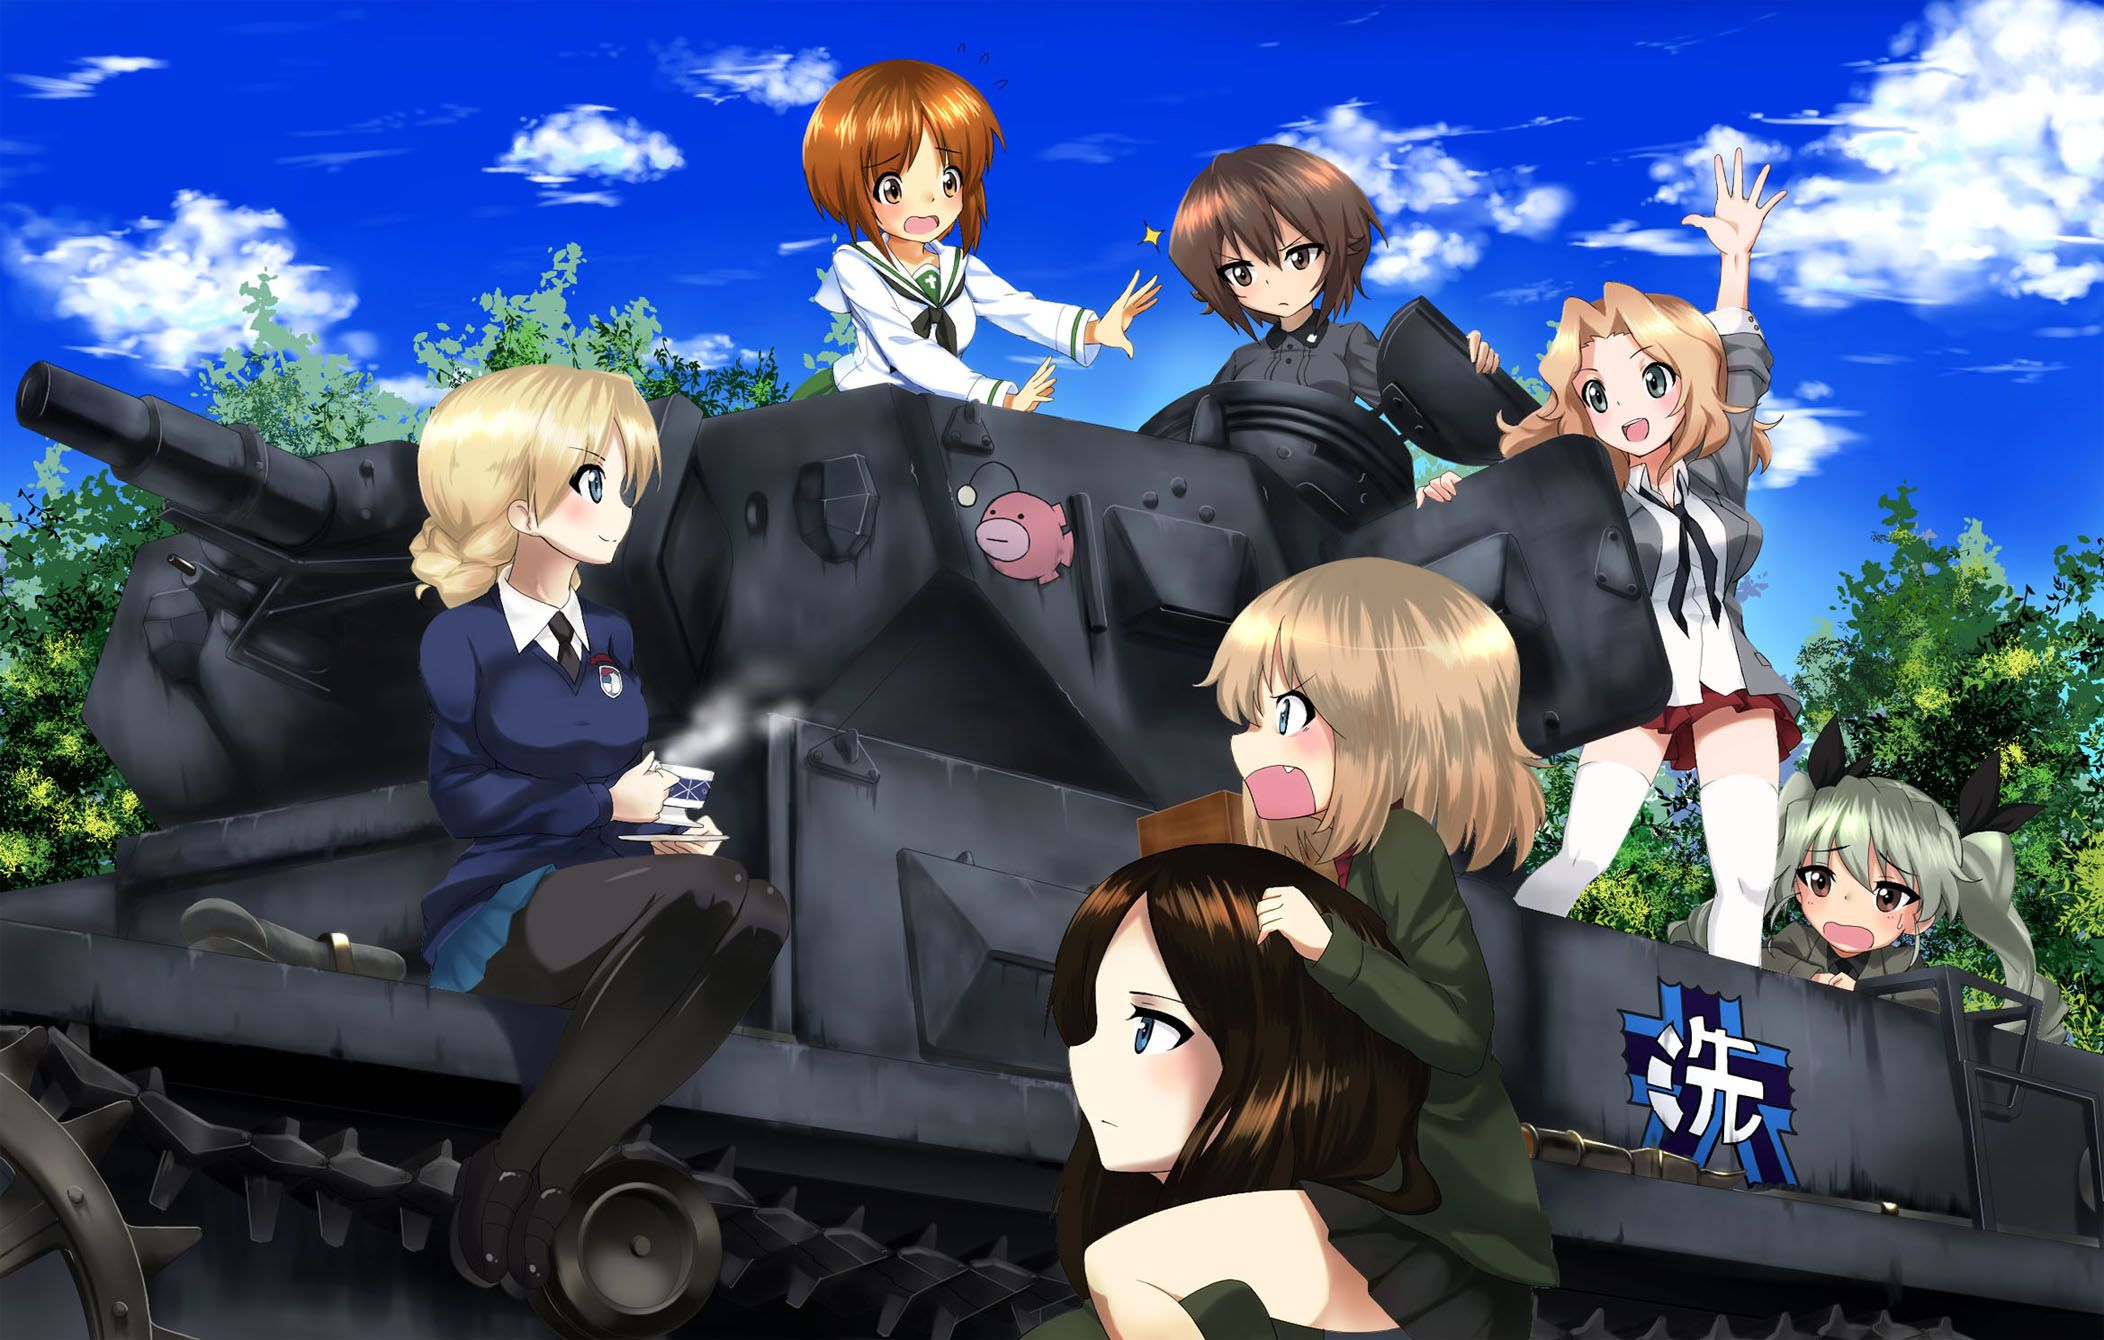 Anime Wallpapers Girls Und Panzer HD 4K Download For Mobile iPhone & PC